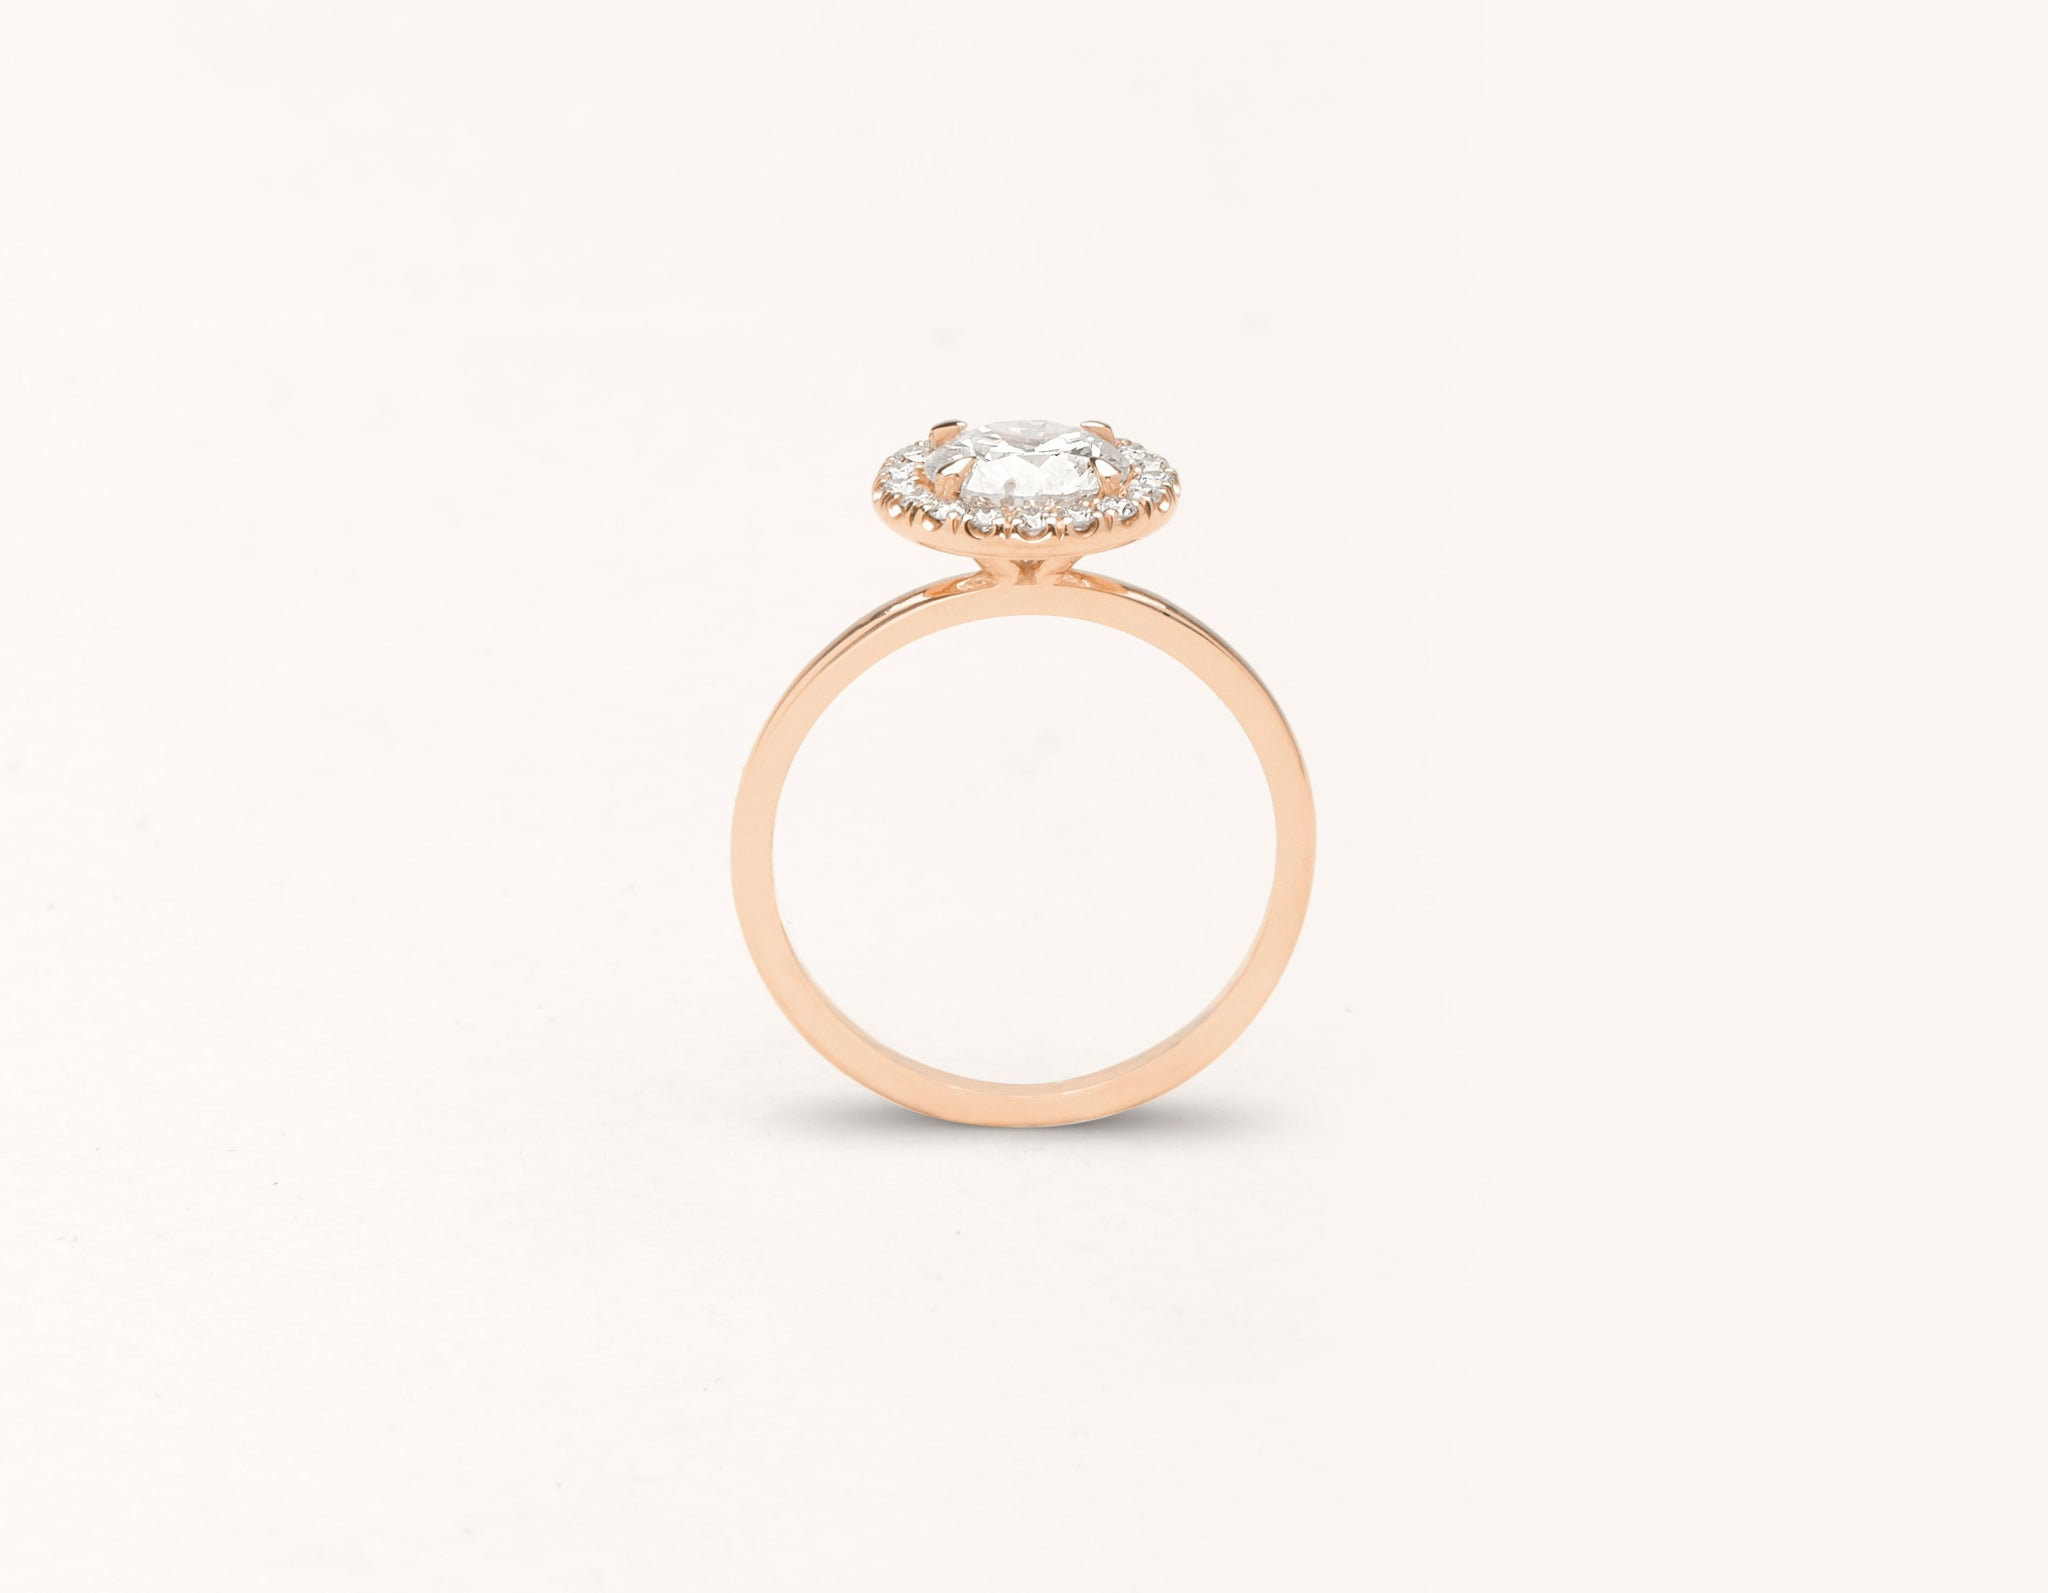 Simple modern 18k solid rose gold 1 carat Halo diamond engagement ring Vrai & Oro